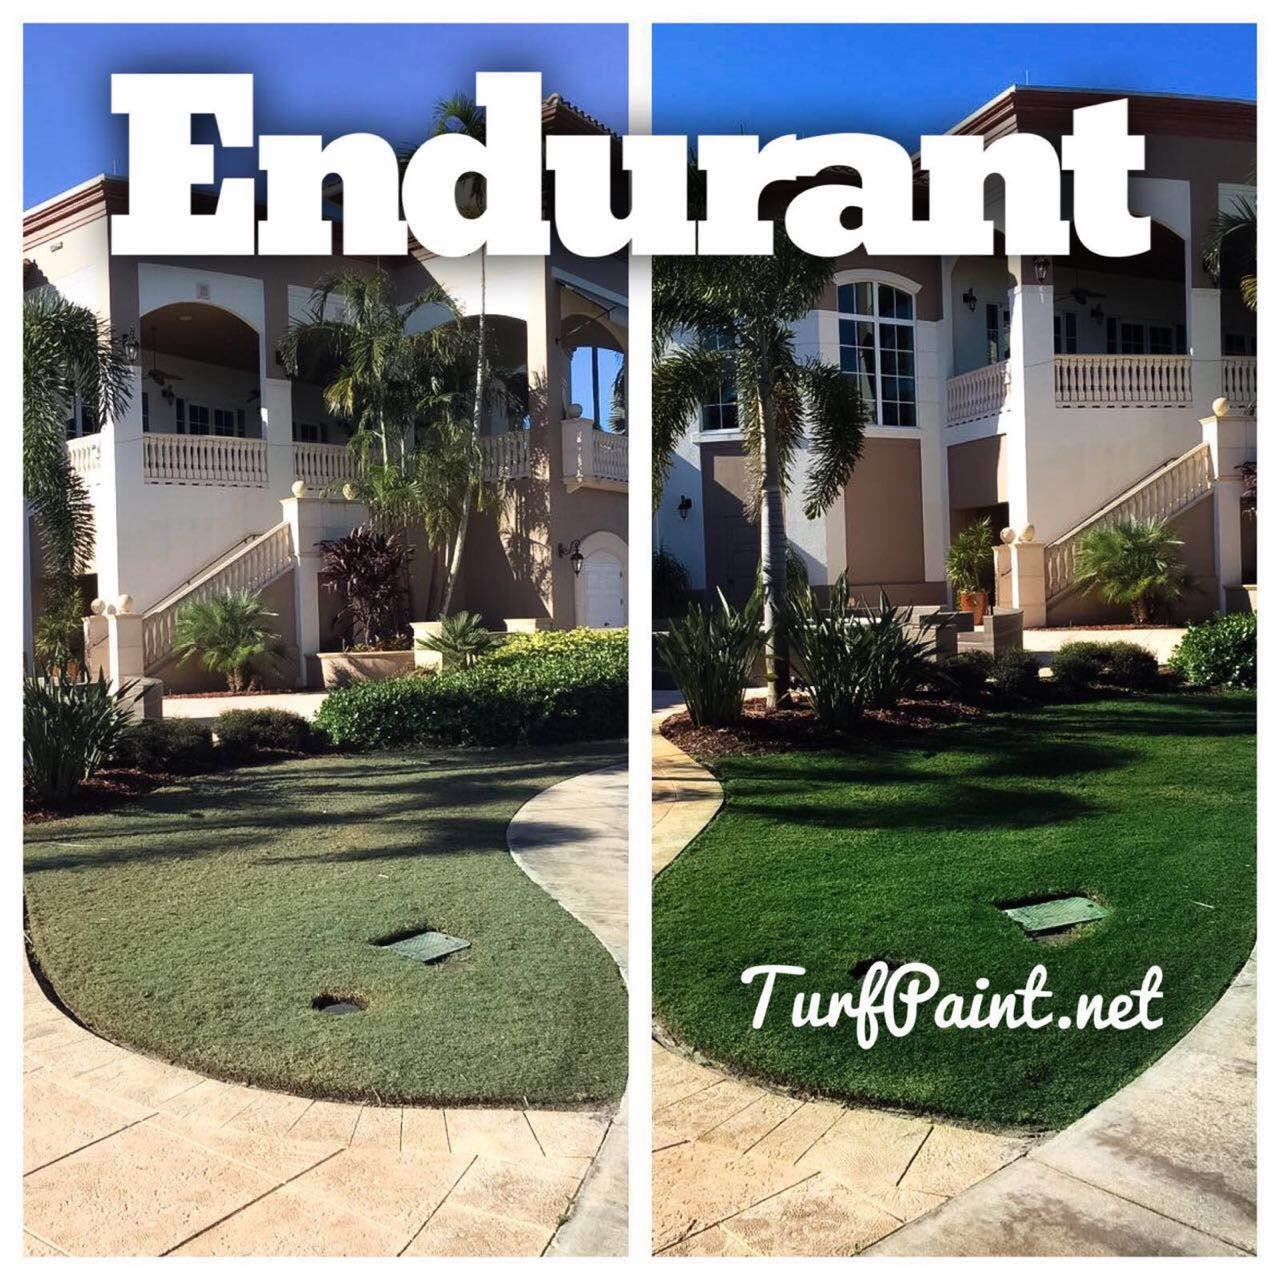 Concentrated Turf and Grass Colorant - 1 Gallon Jug Revitalizes Approximately 10,000 Sq. Ft of Dormant, Drought-Stricken or Patchy Lawn (Premium) by   Endurant (Image #4)